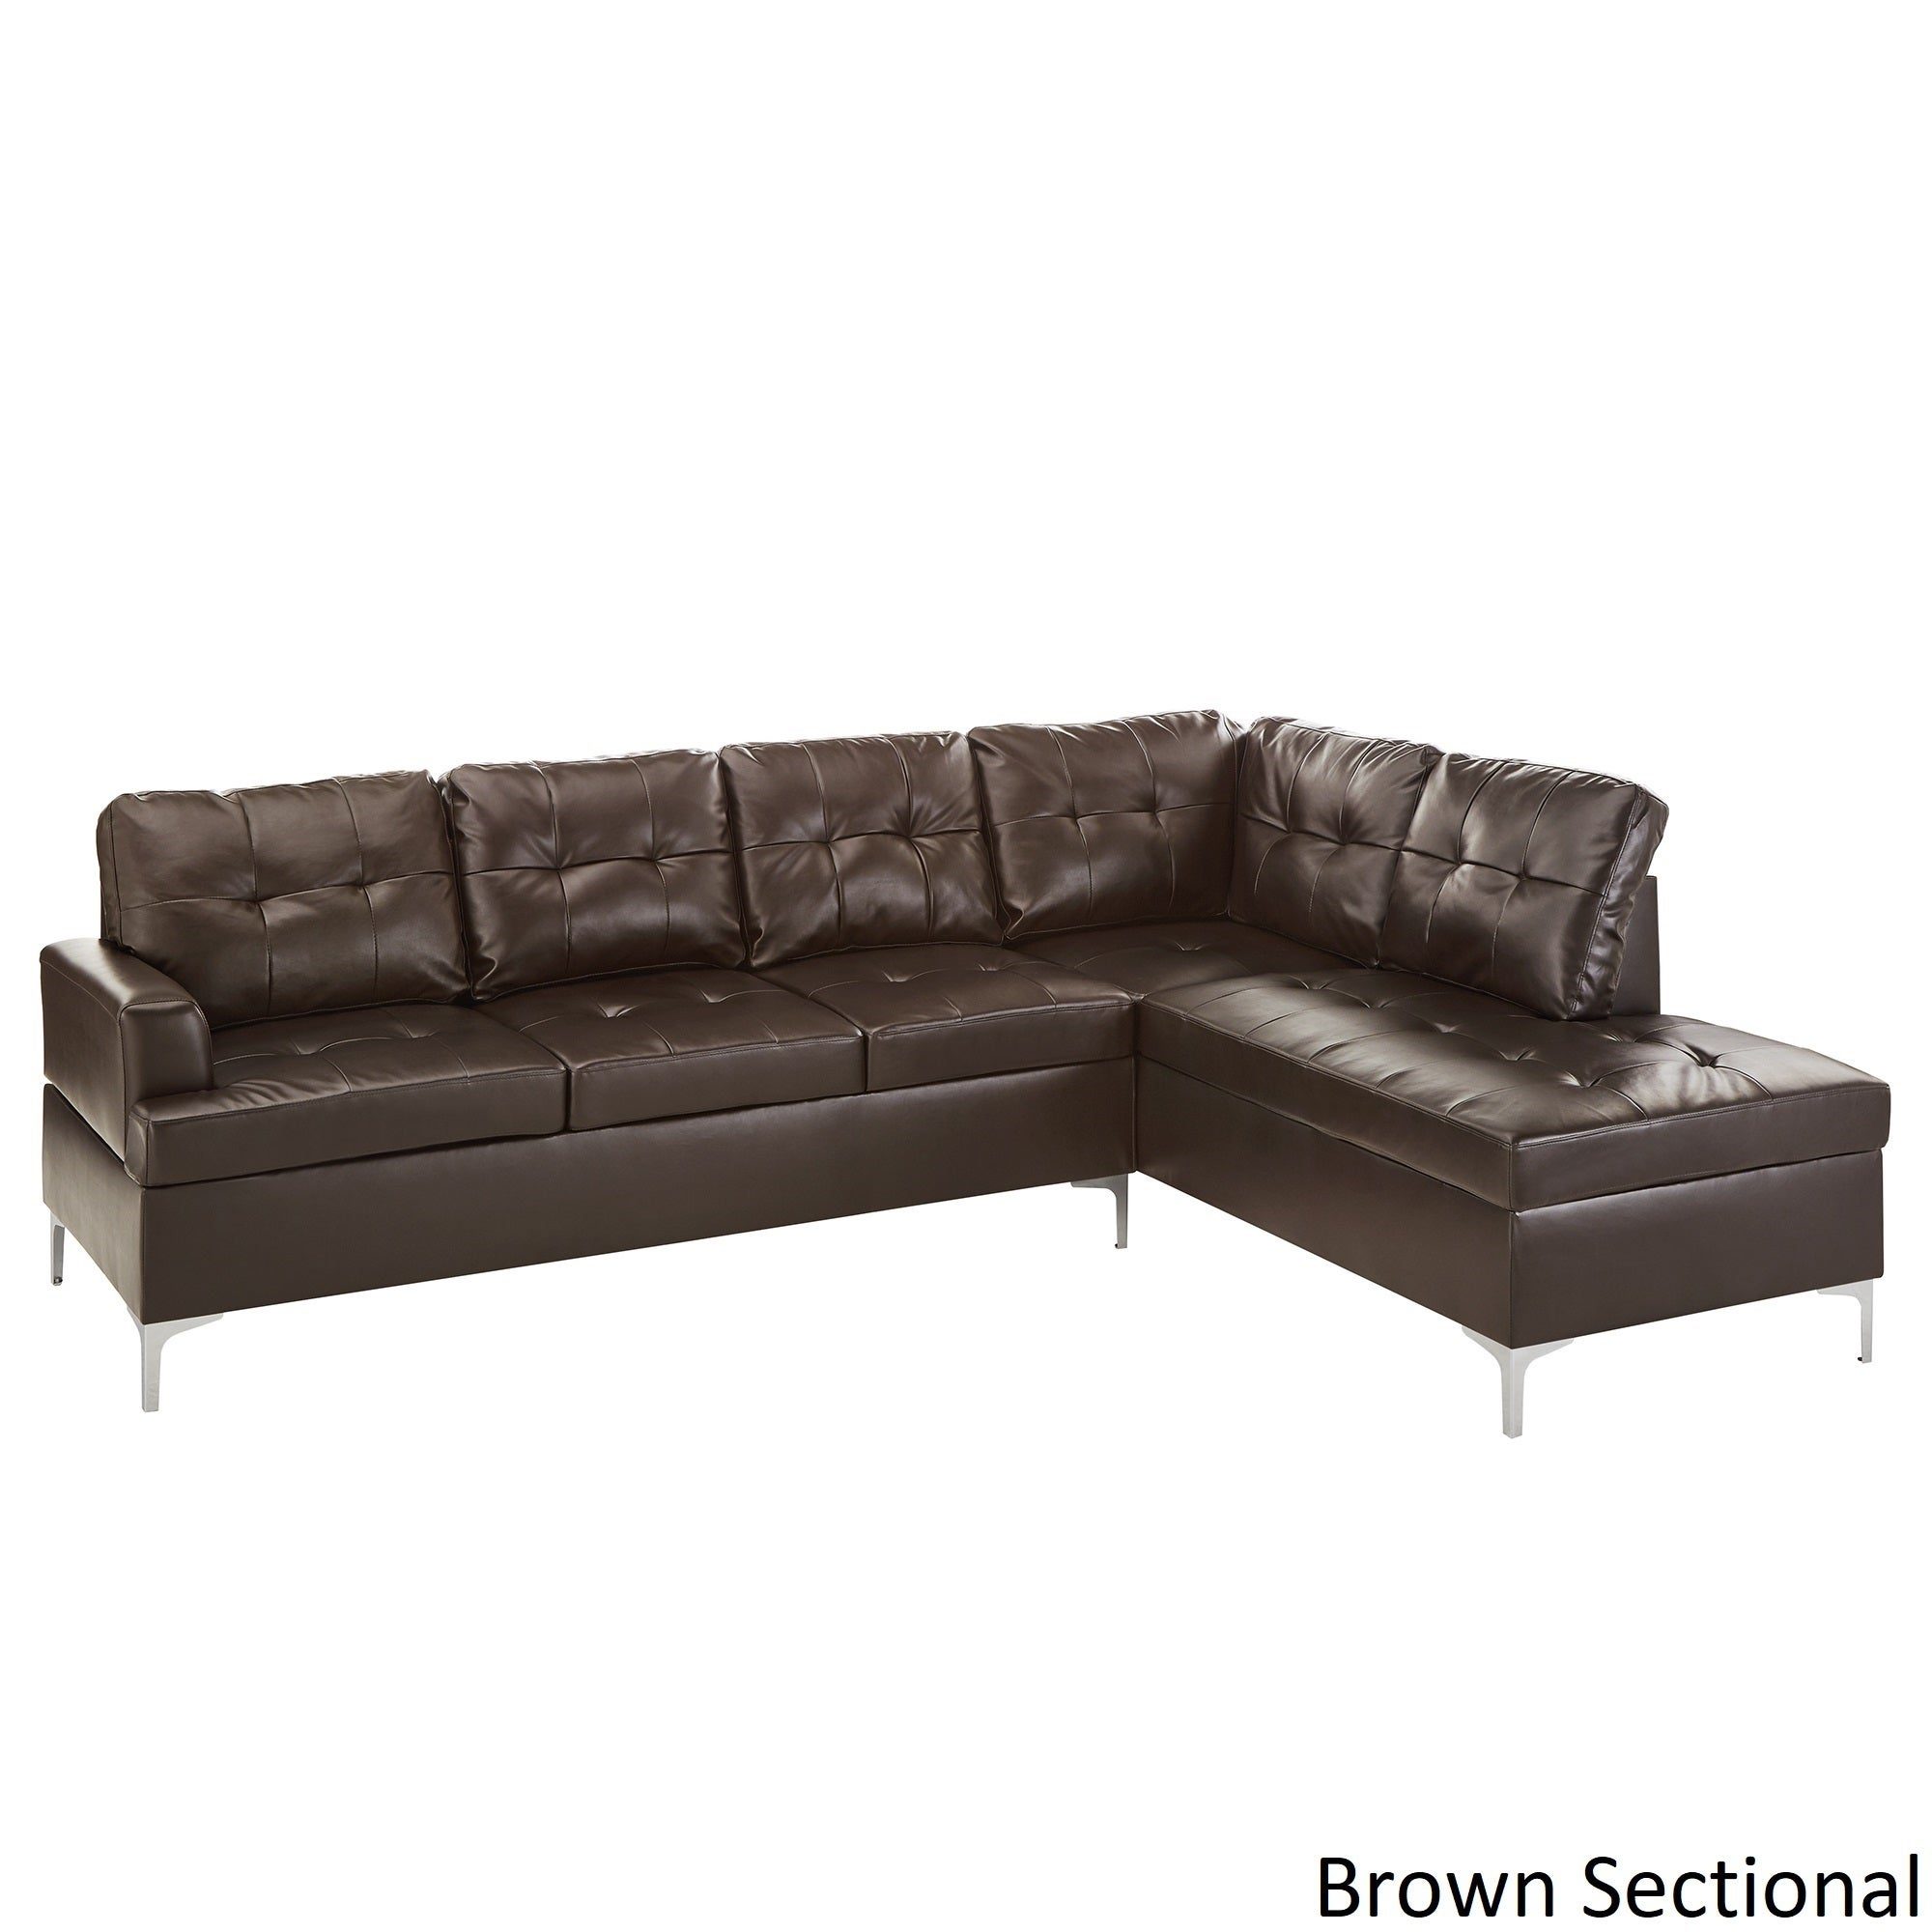 Exceptionnel Bonnie Tufted Faux Leather Sofa Sectional With Chaise By INSPIRE Q Modern    Free Shipping Today   Overstock.com   25633750